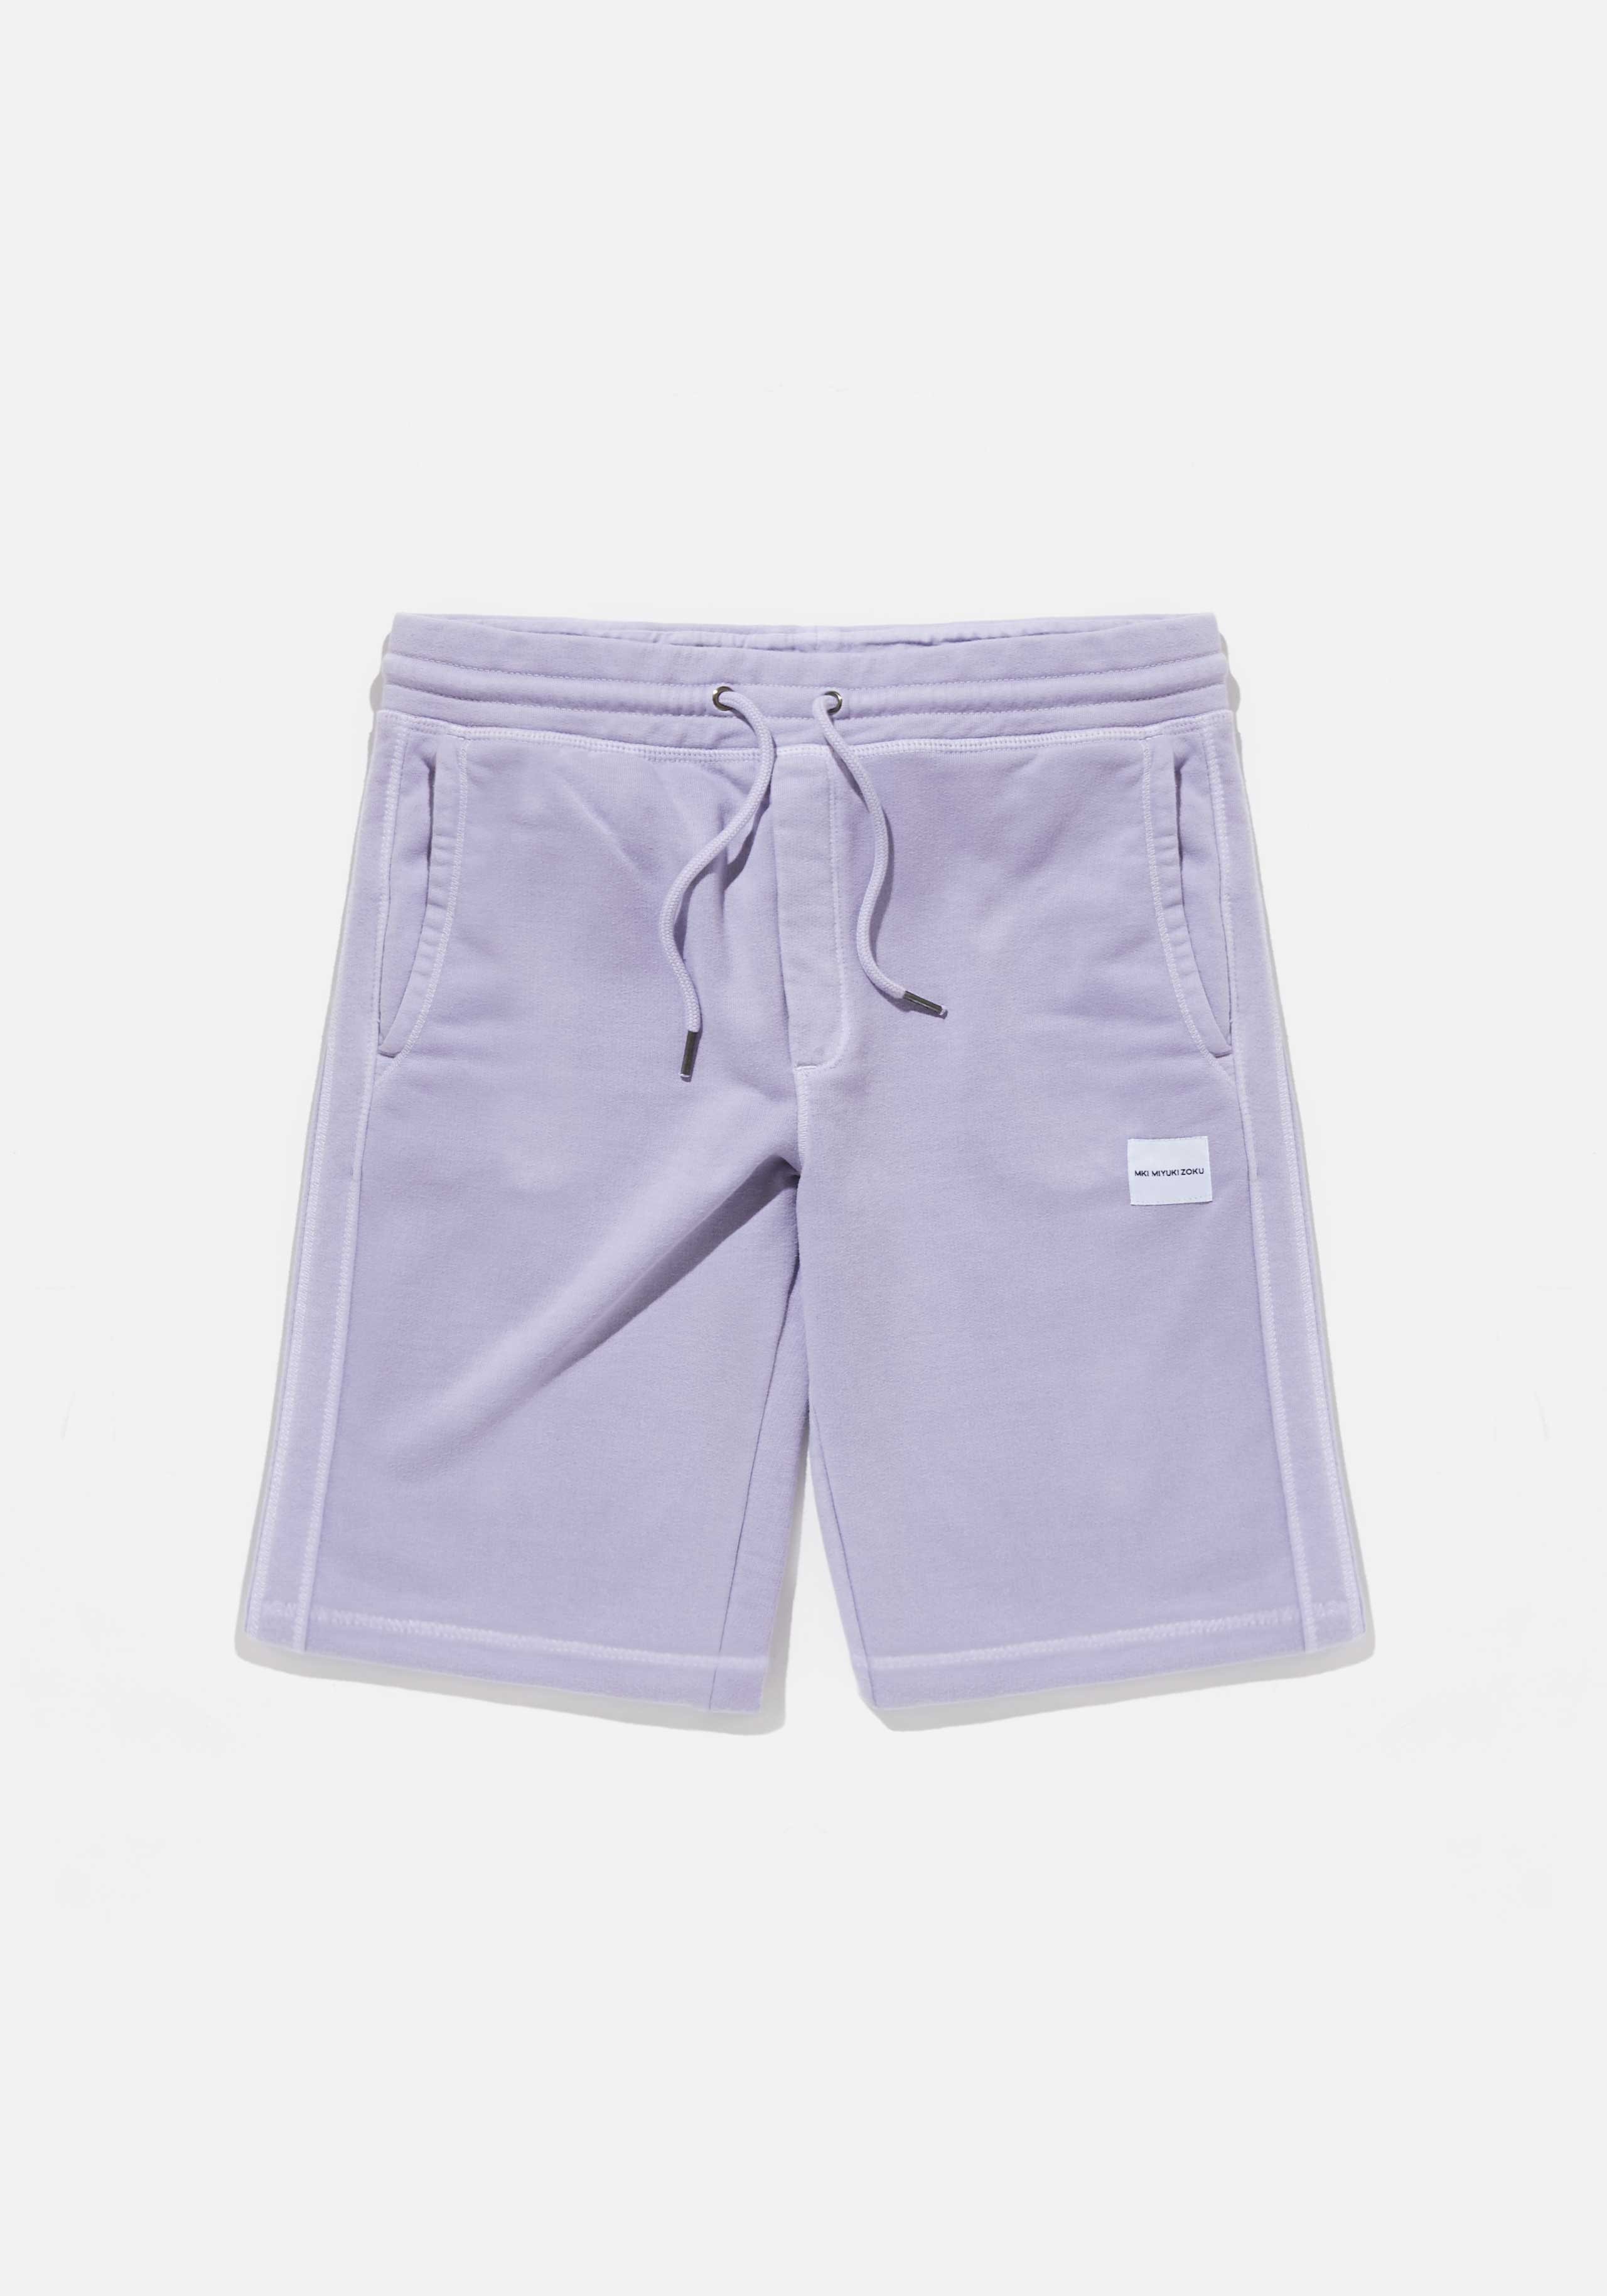 mki pigment dyed shorts 1